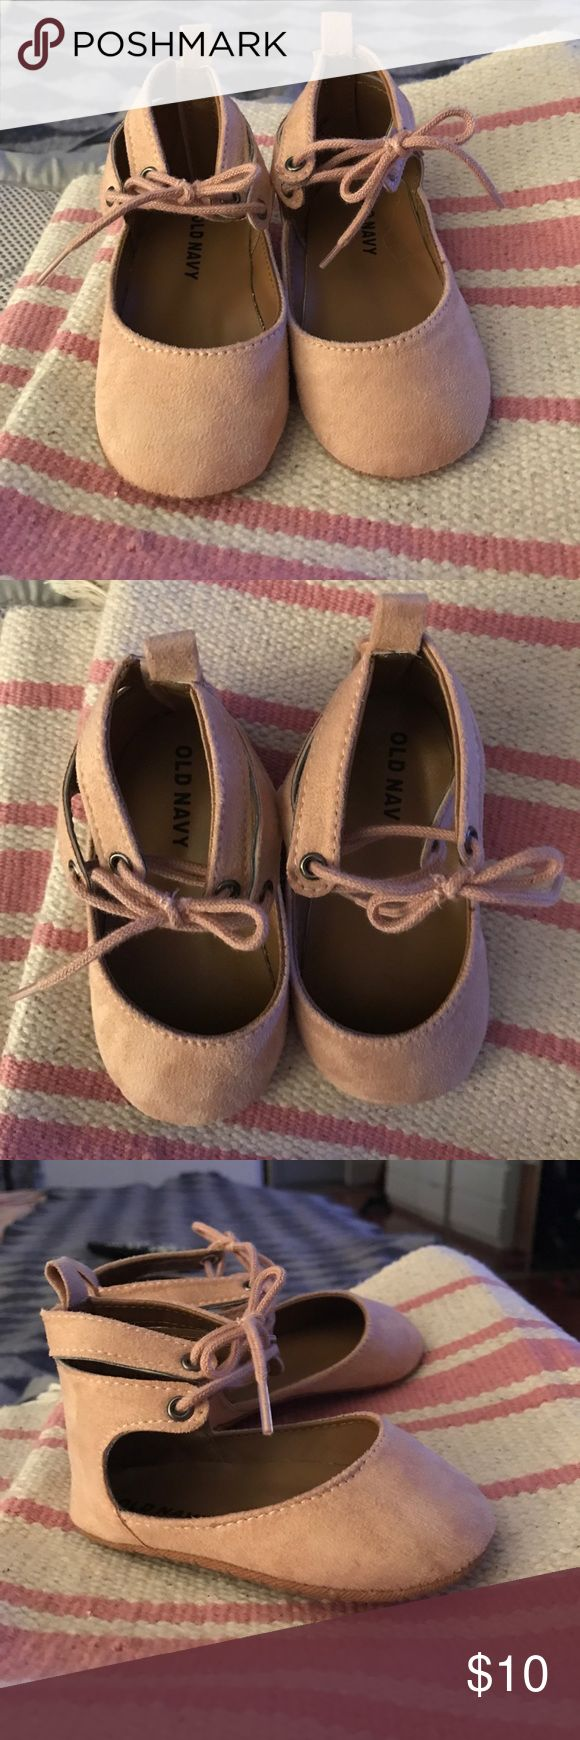 Old Navy girl shoes Ballerina Pink, faux lace up, Velcro back slipper shoes. Size 12-18 months. NWOT, never been worn. Old Navy Shoes Baby & Walker